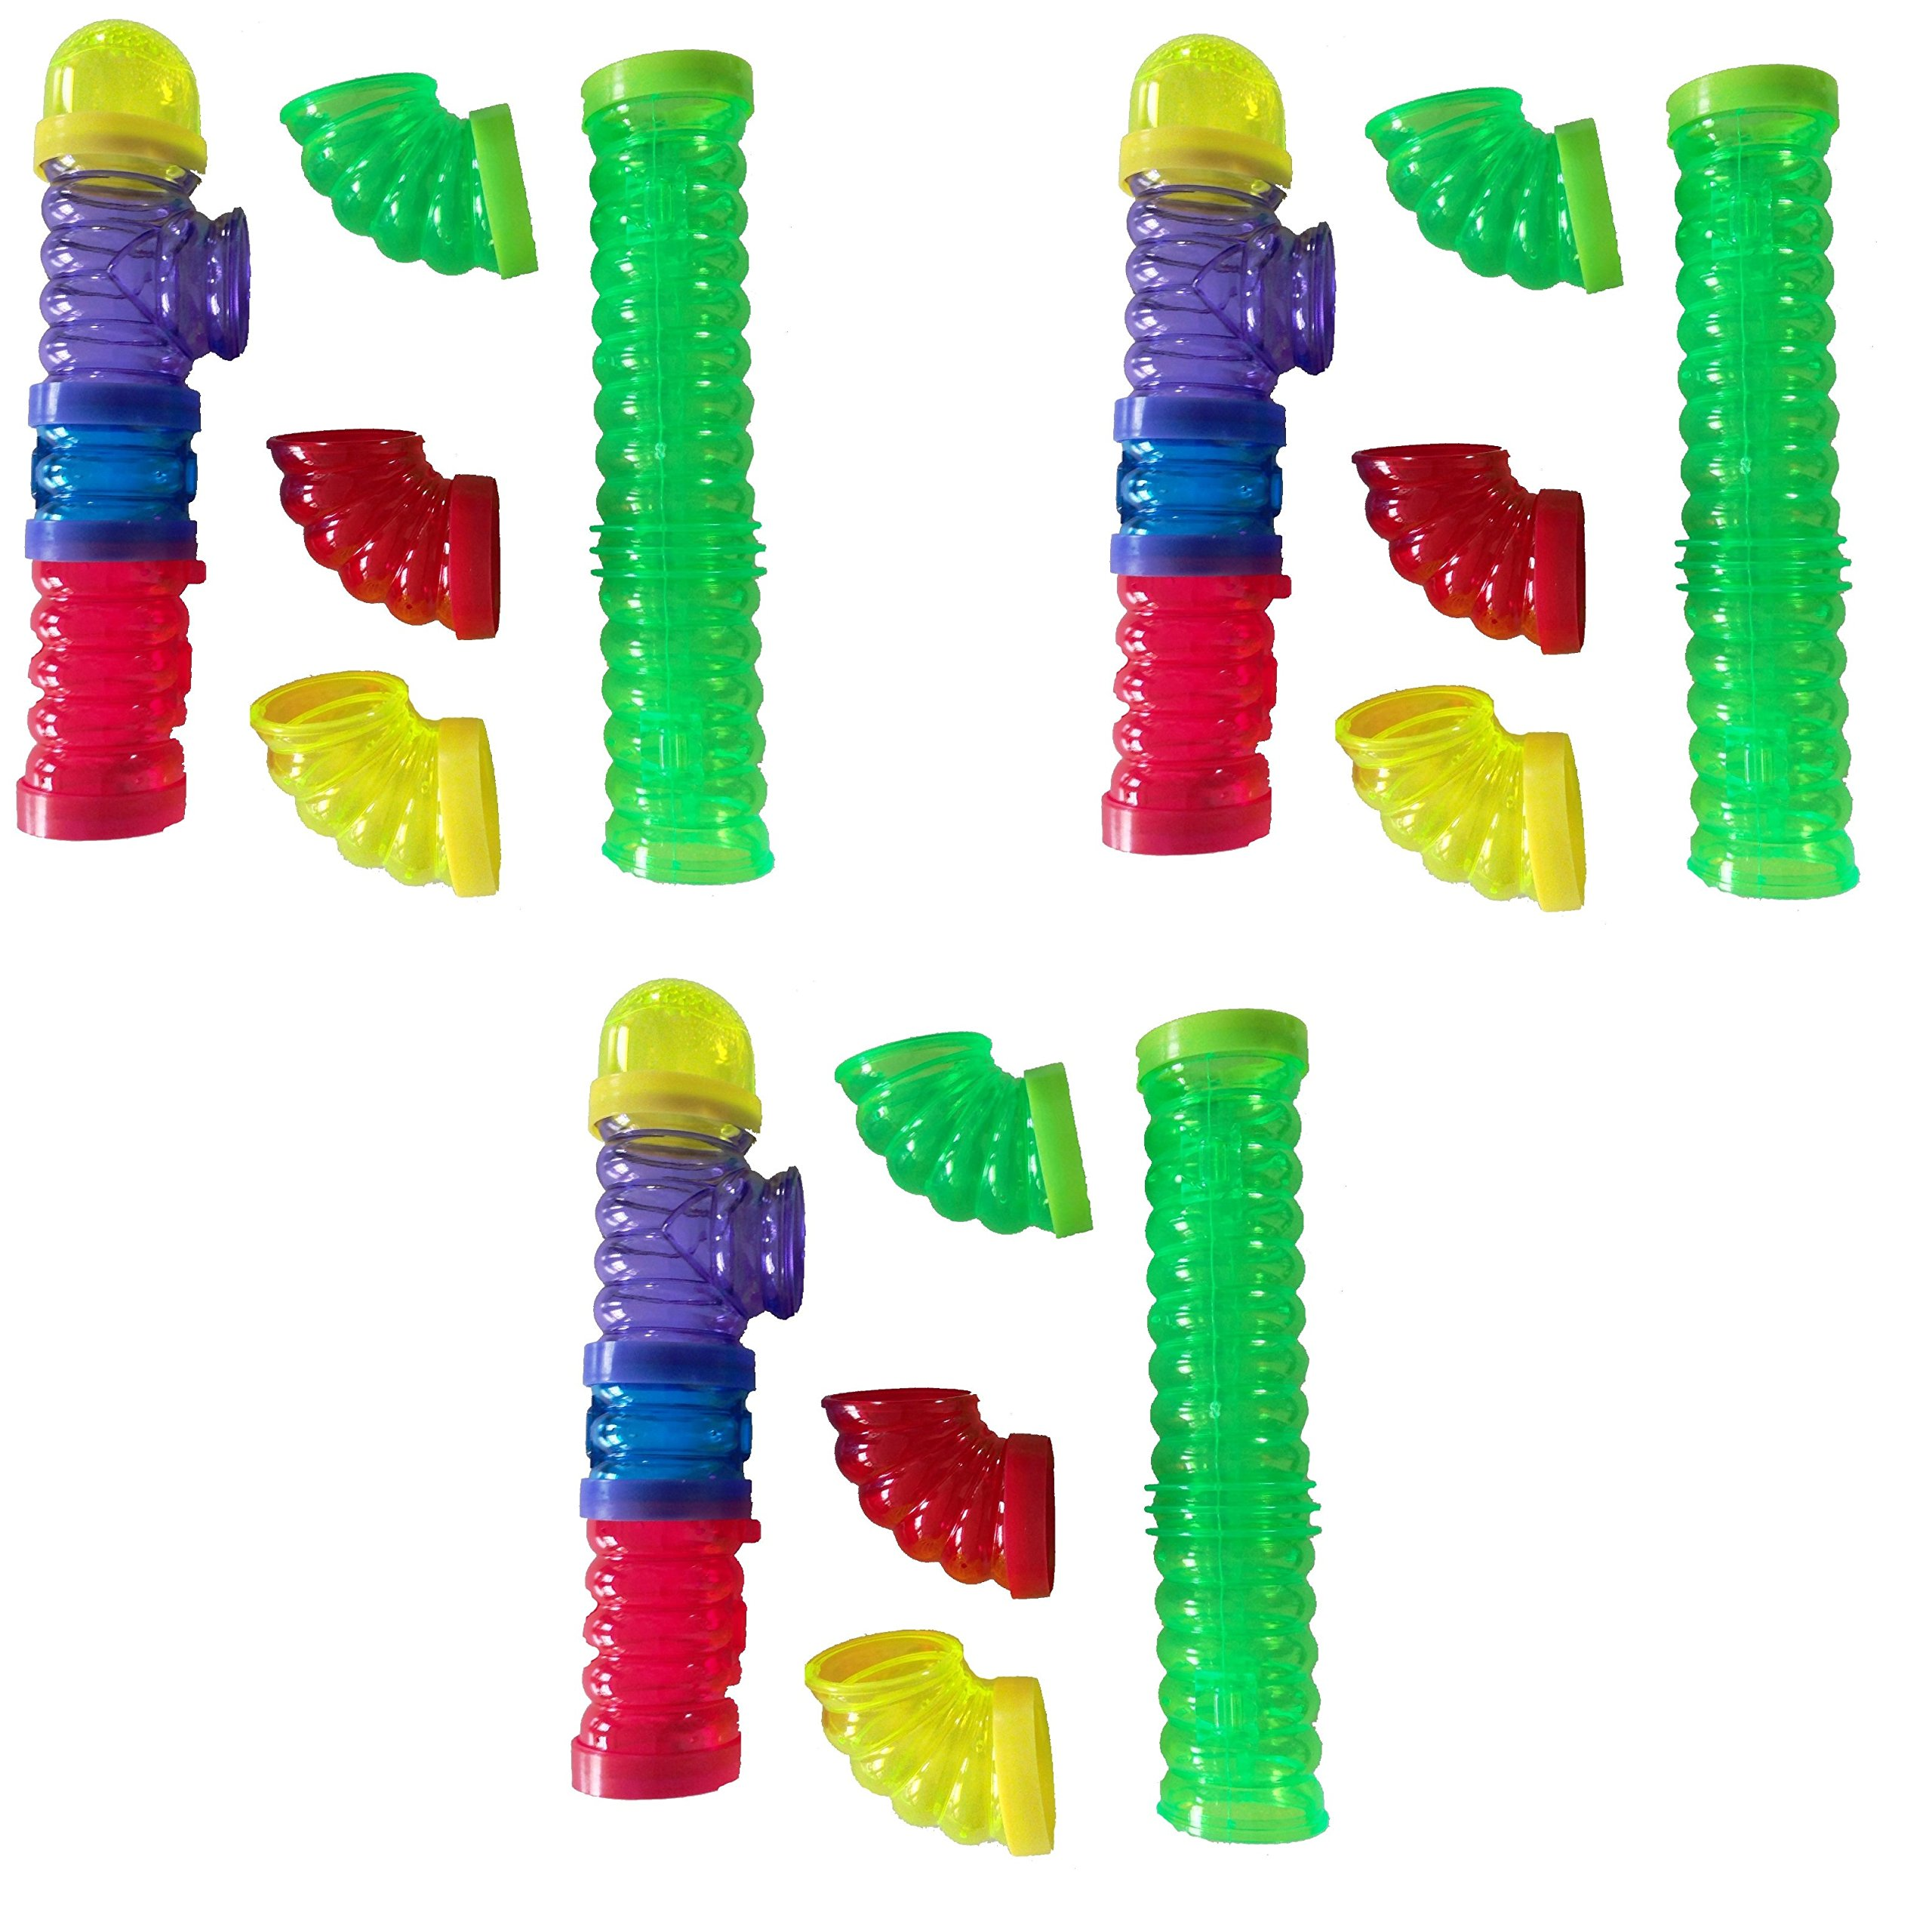 KT (3 Packages) CritterTrail Fun-nels Assorted Tubes